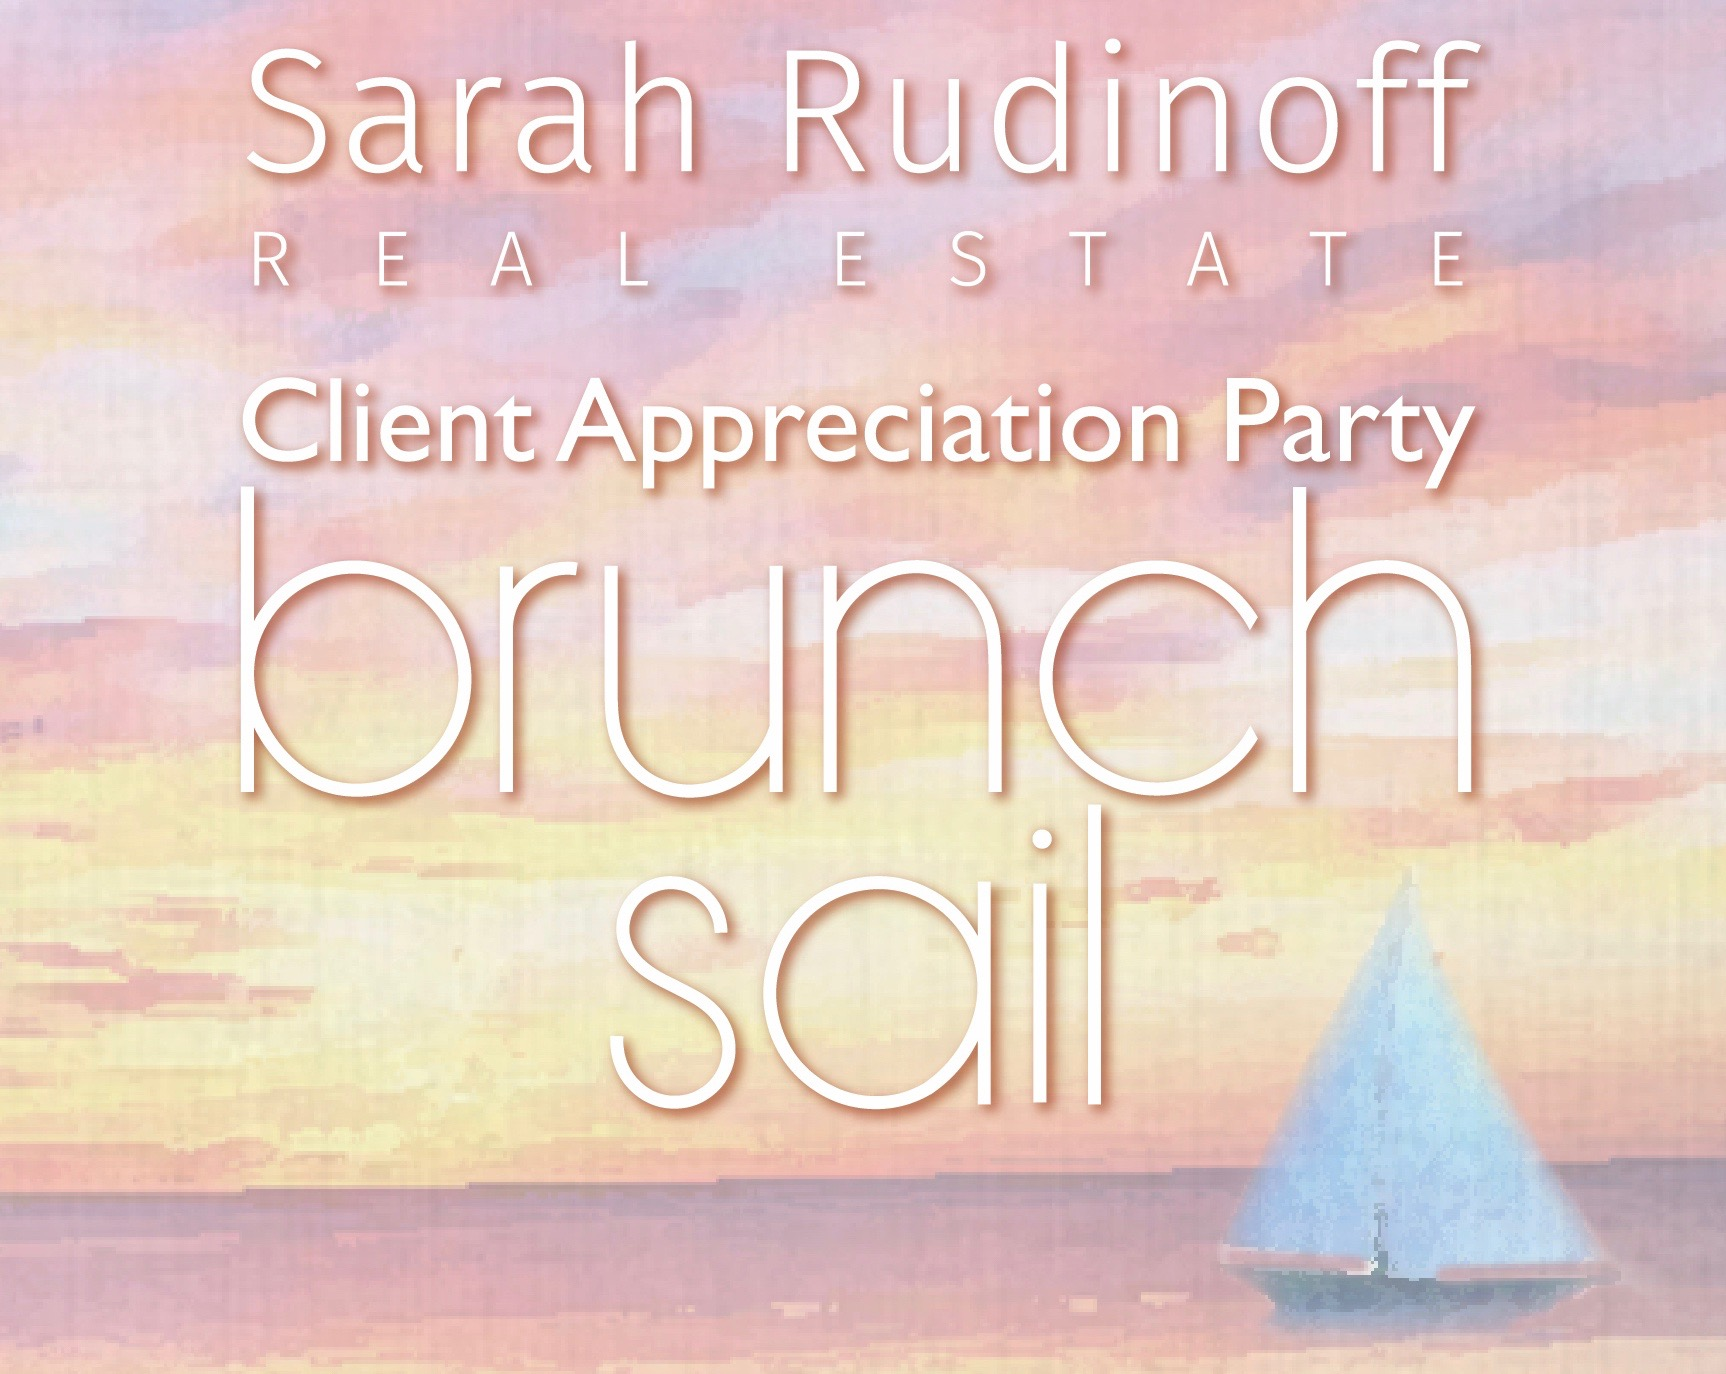 SarahR_BrunchSail_Invite_Final-01 (1).jpg